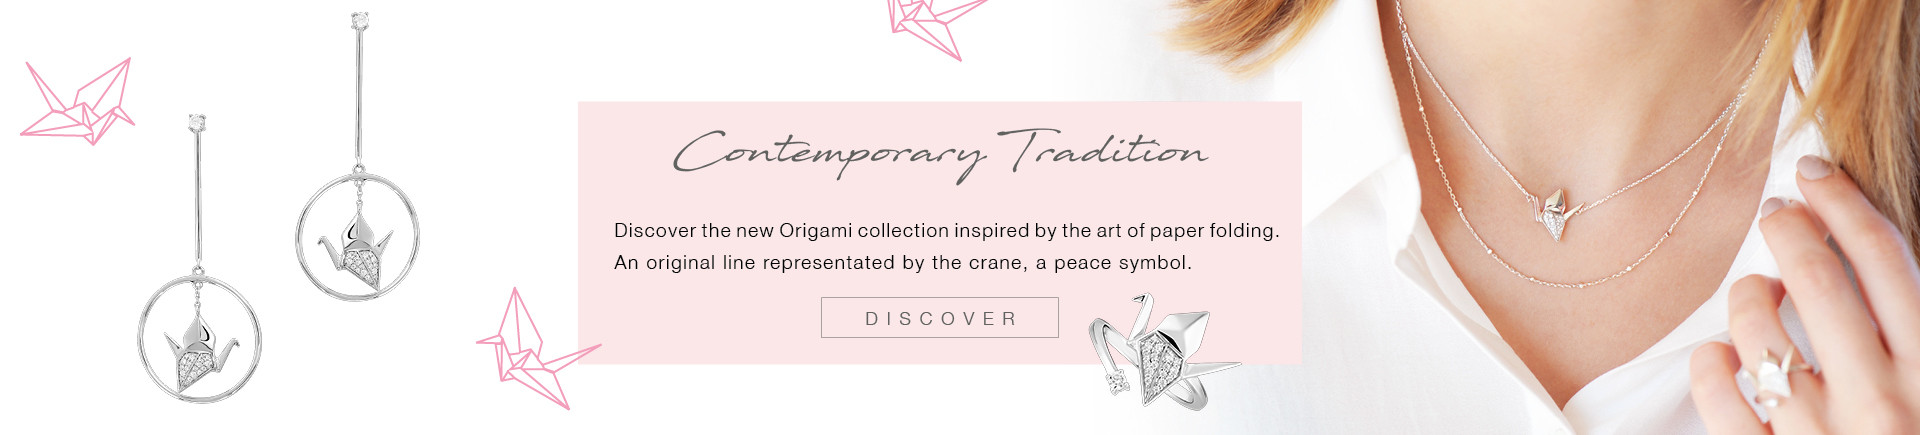 The new Origami collection is inspired by paper cranes, a traditional art of Japan.